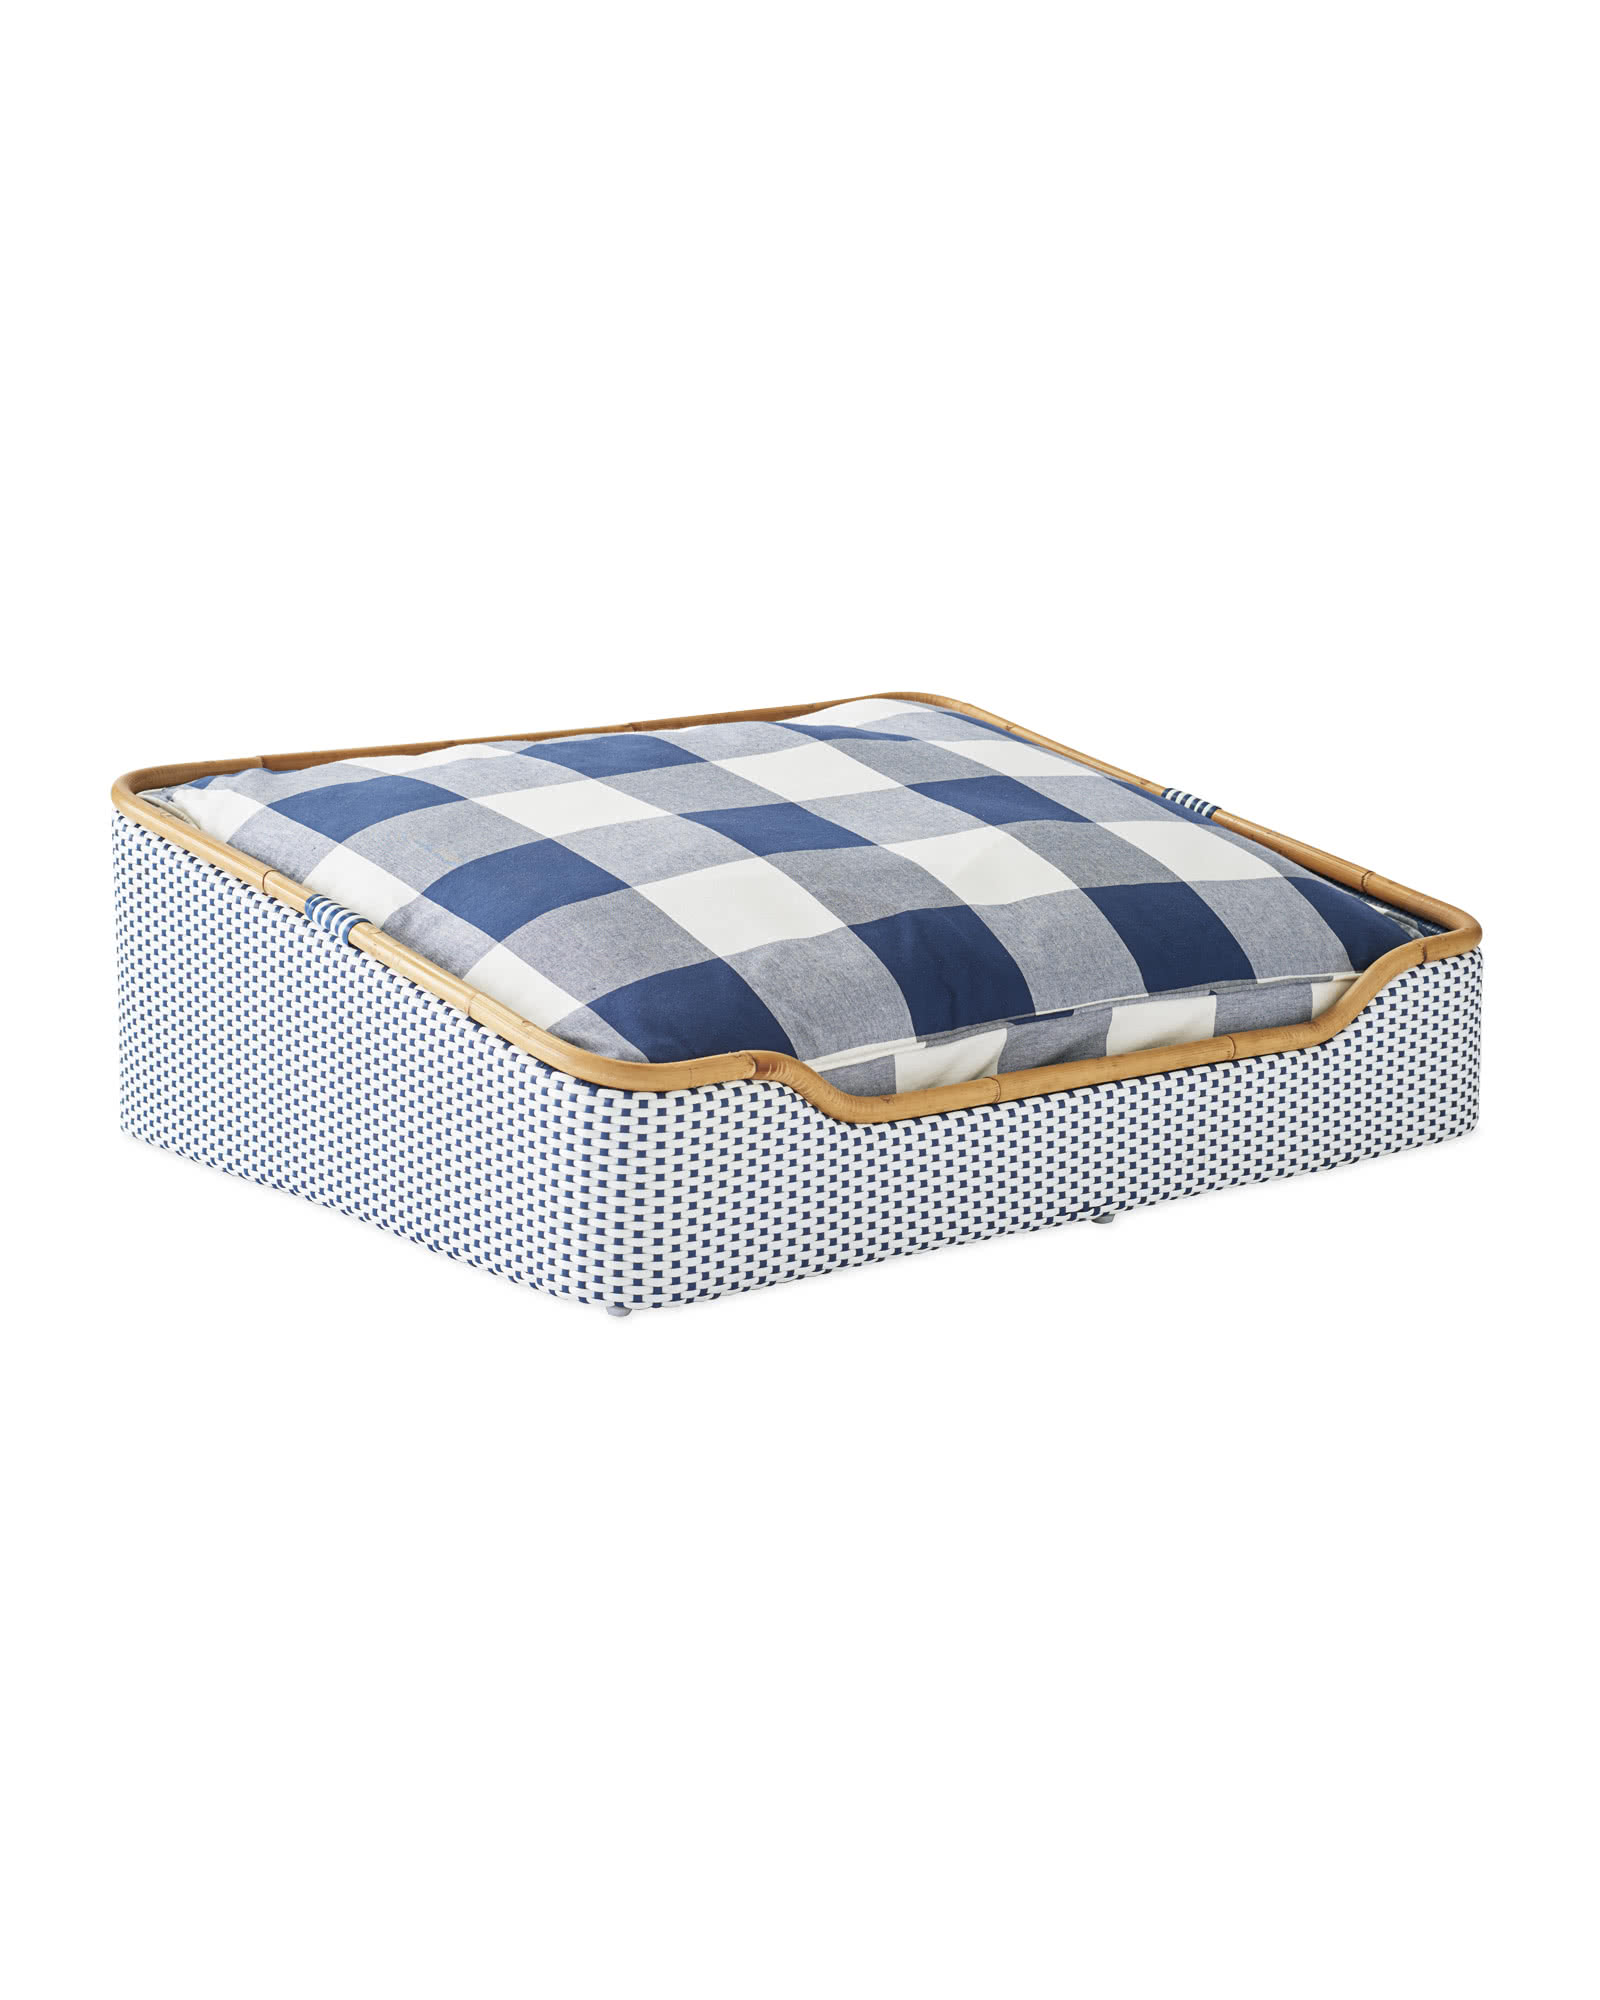 Riviera Dog Bed, Navy Gingham